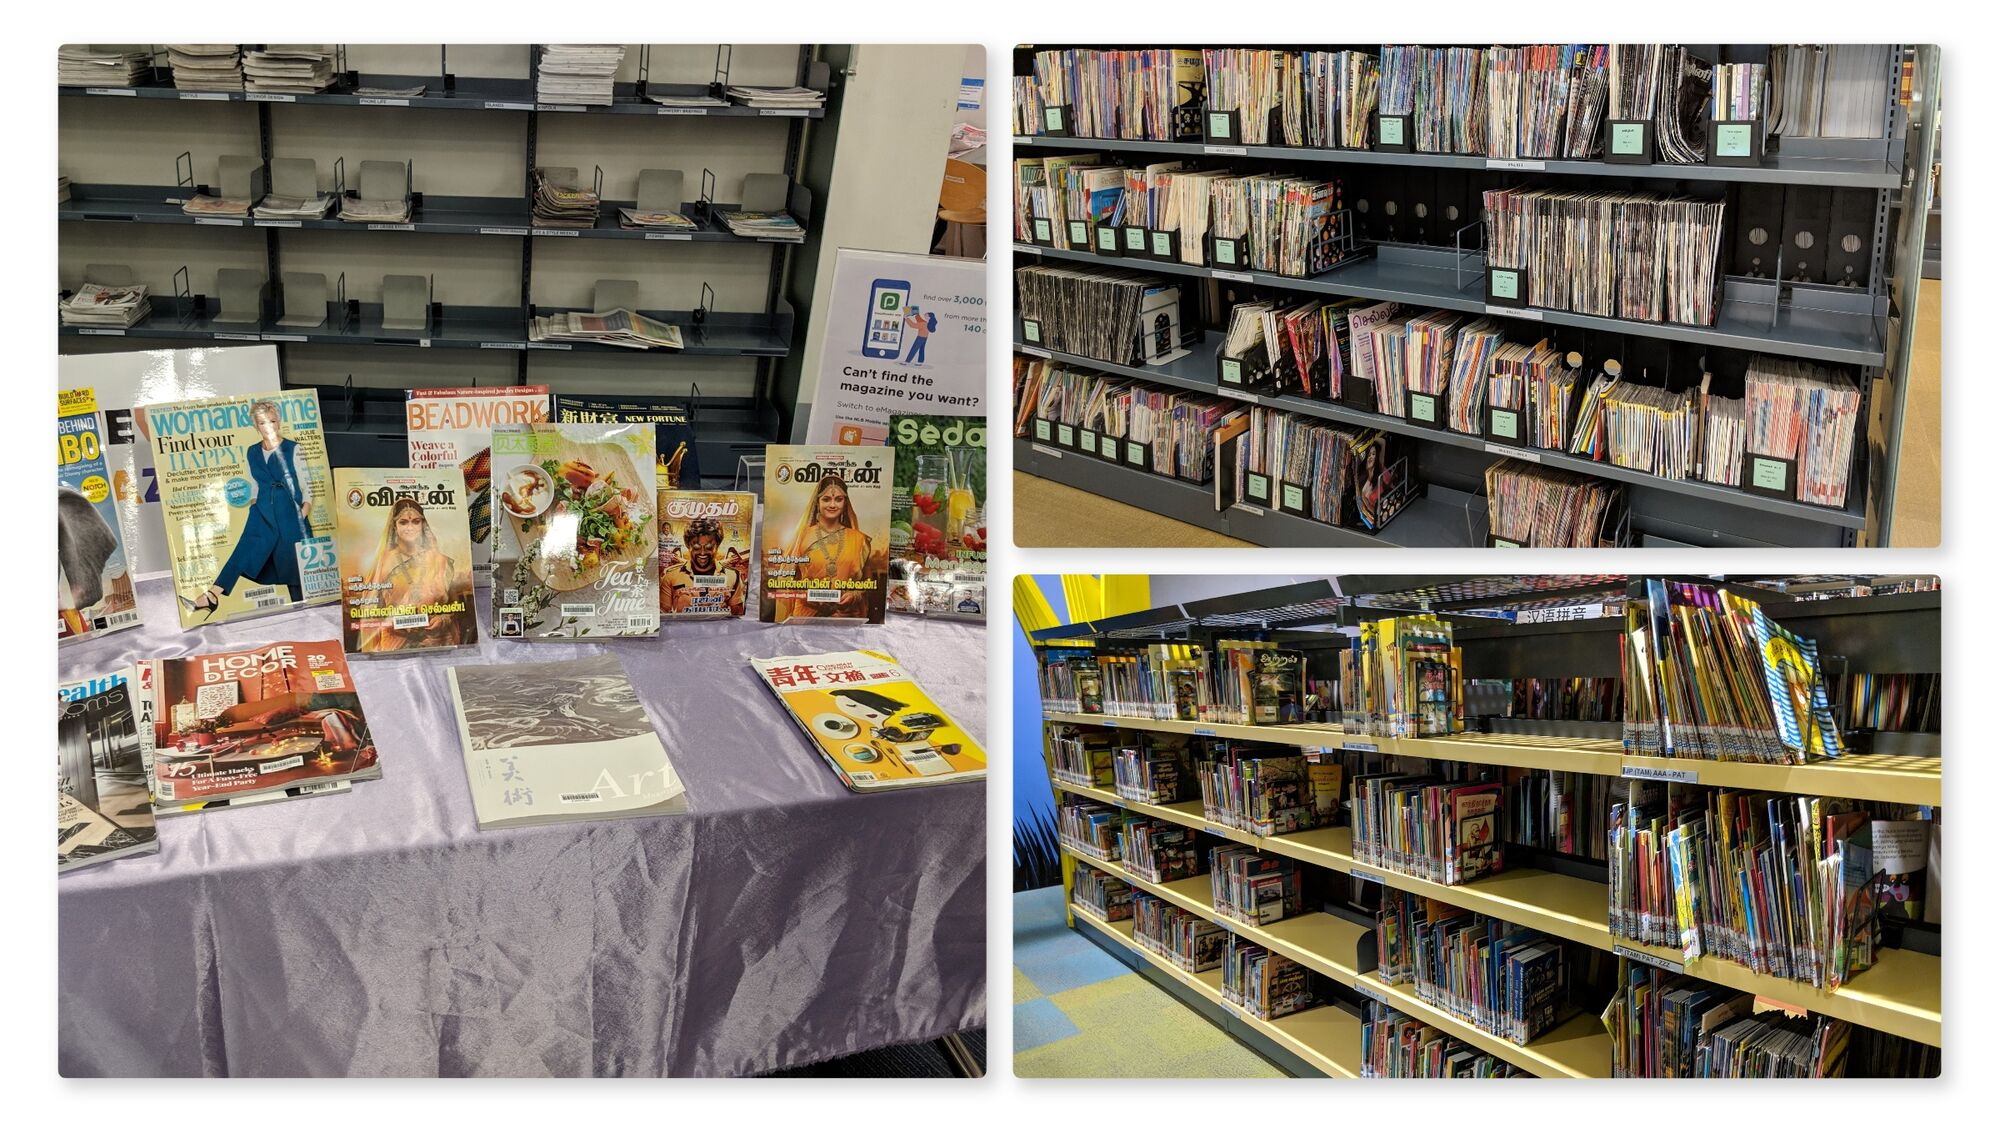 Magazines on display, Tamil magazines and Tamil books for Kids